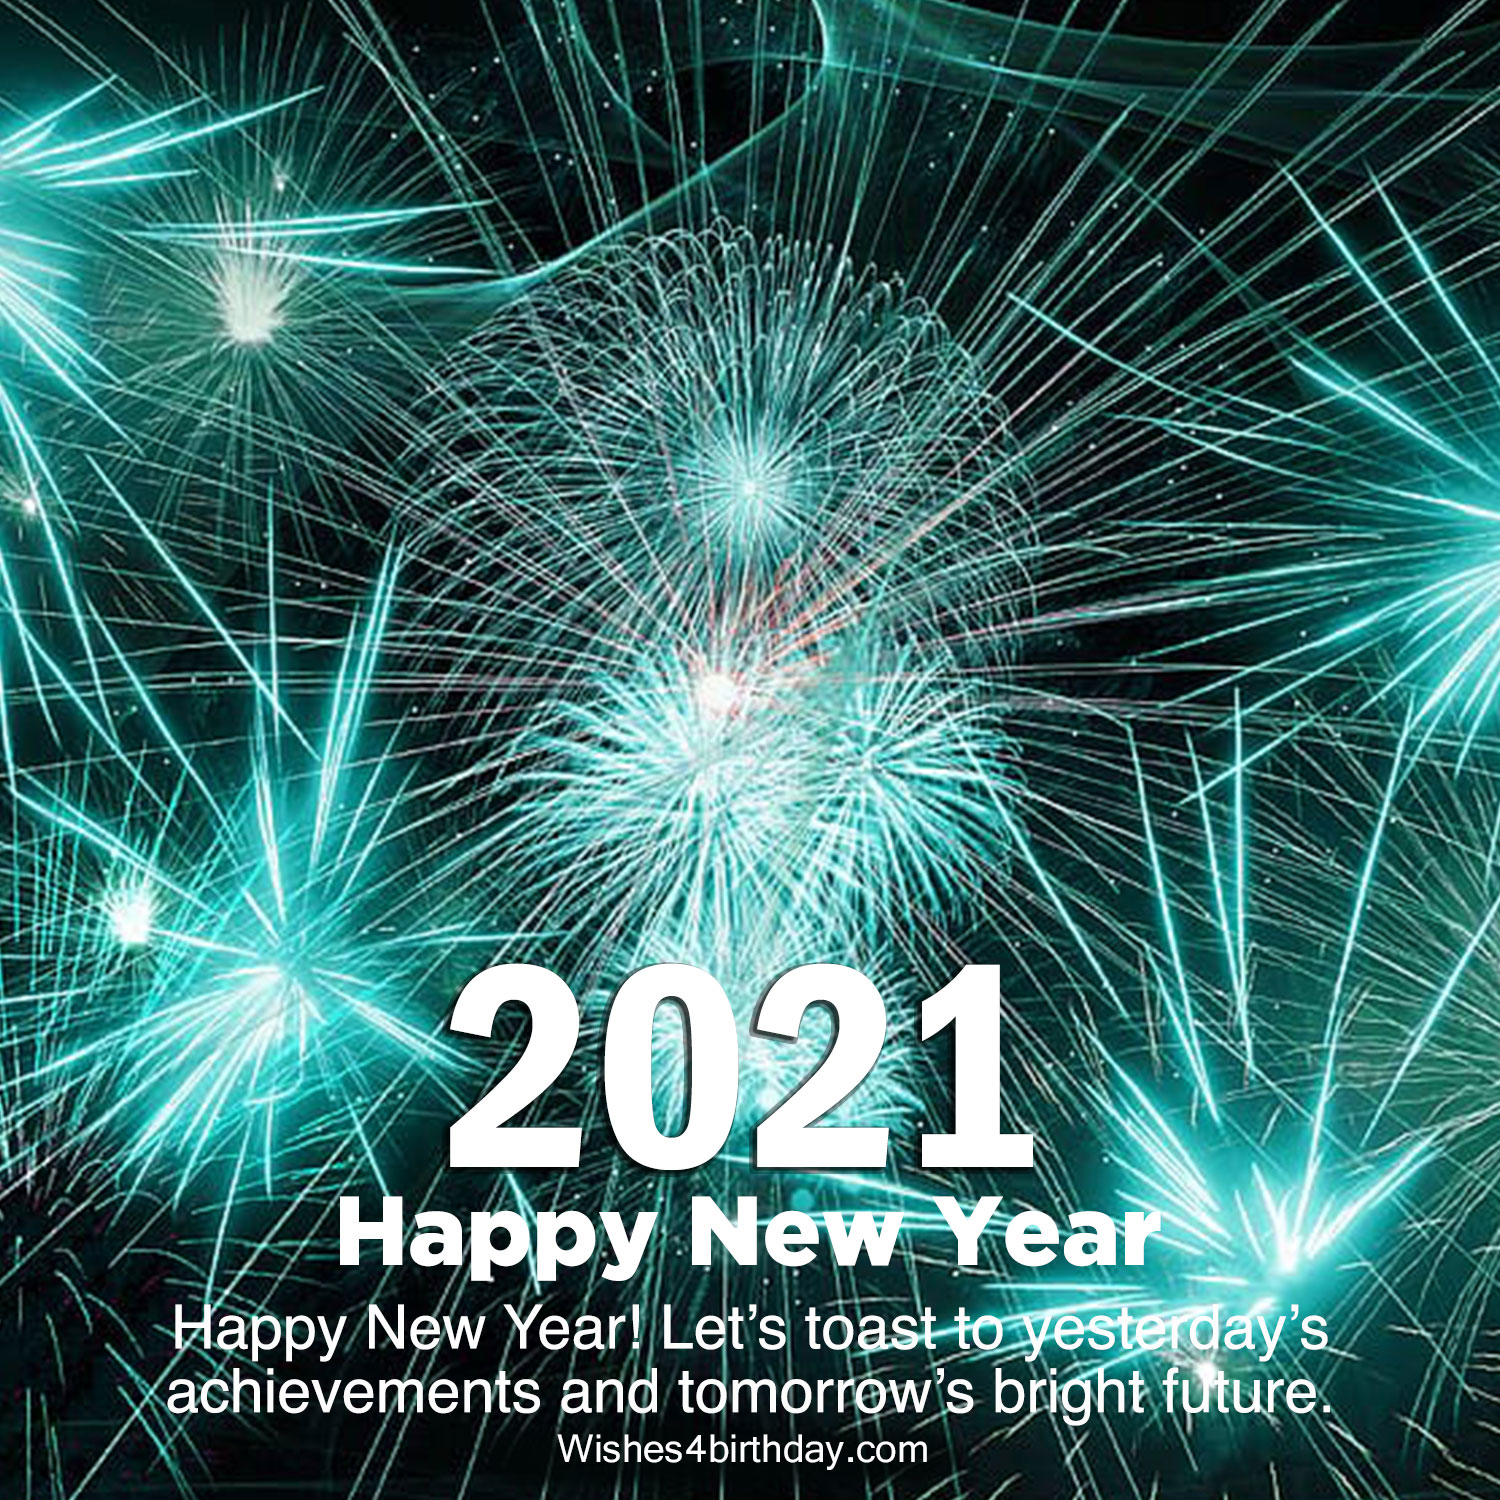 happy new year 2021 countdown starts now happy birthday wishes memes sms greeting ecard images happy new year 2021 countdown starts